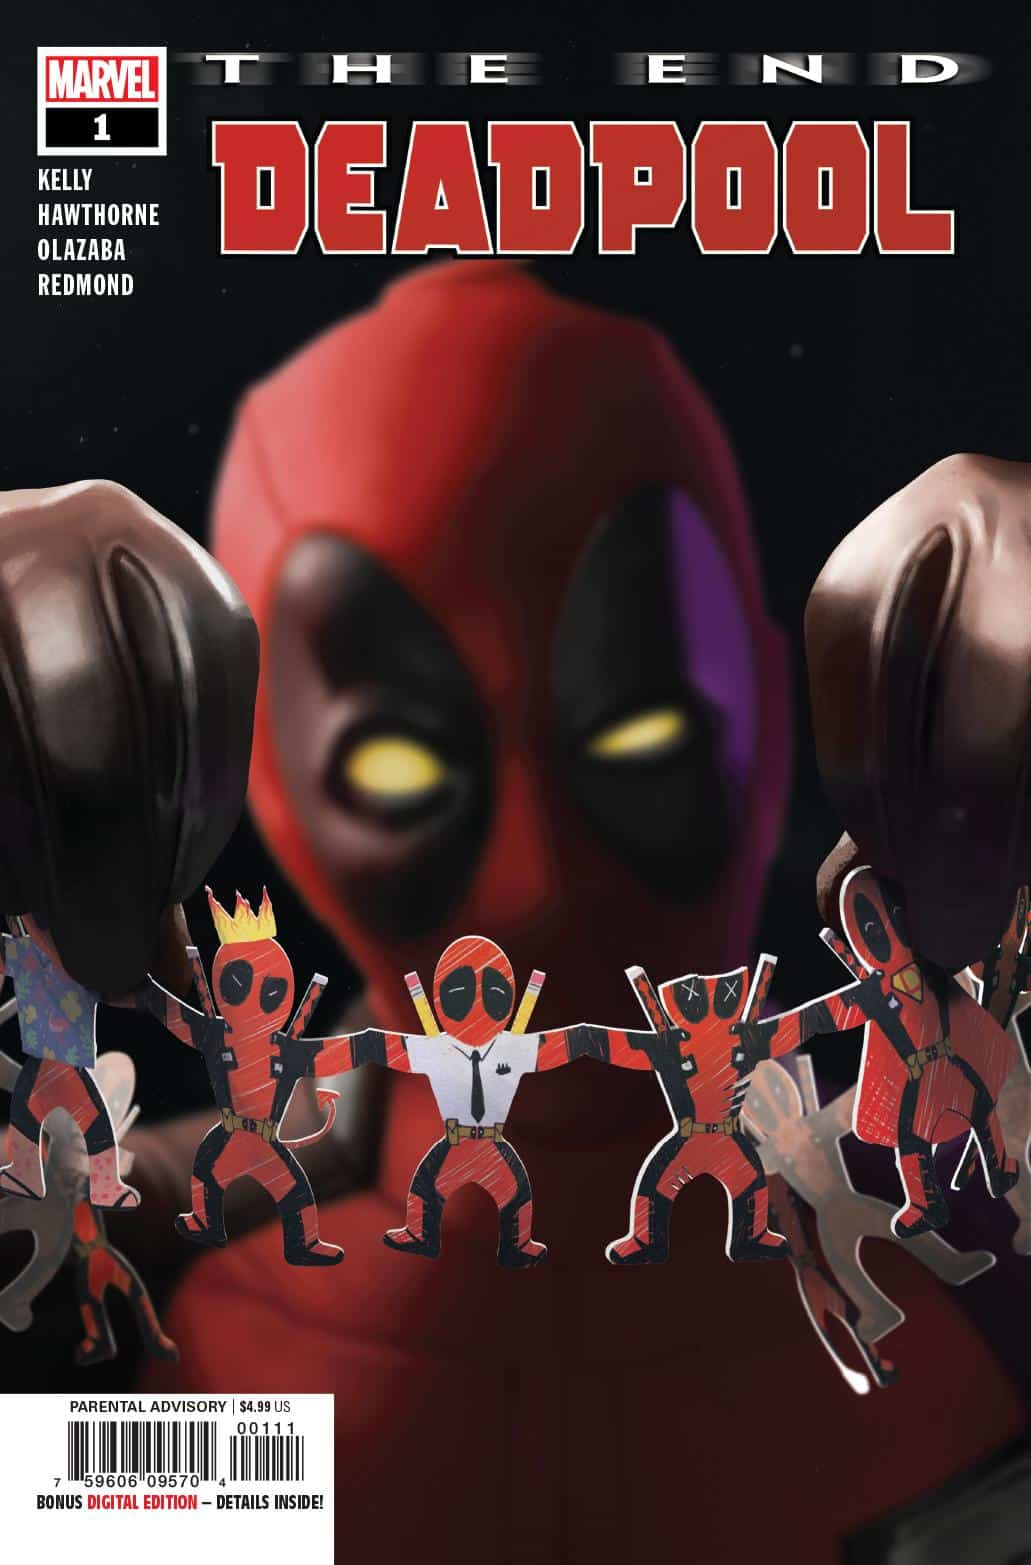 Deadpool's DC Universe Jokes Are Getting Stale and Dividing the Fandom